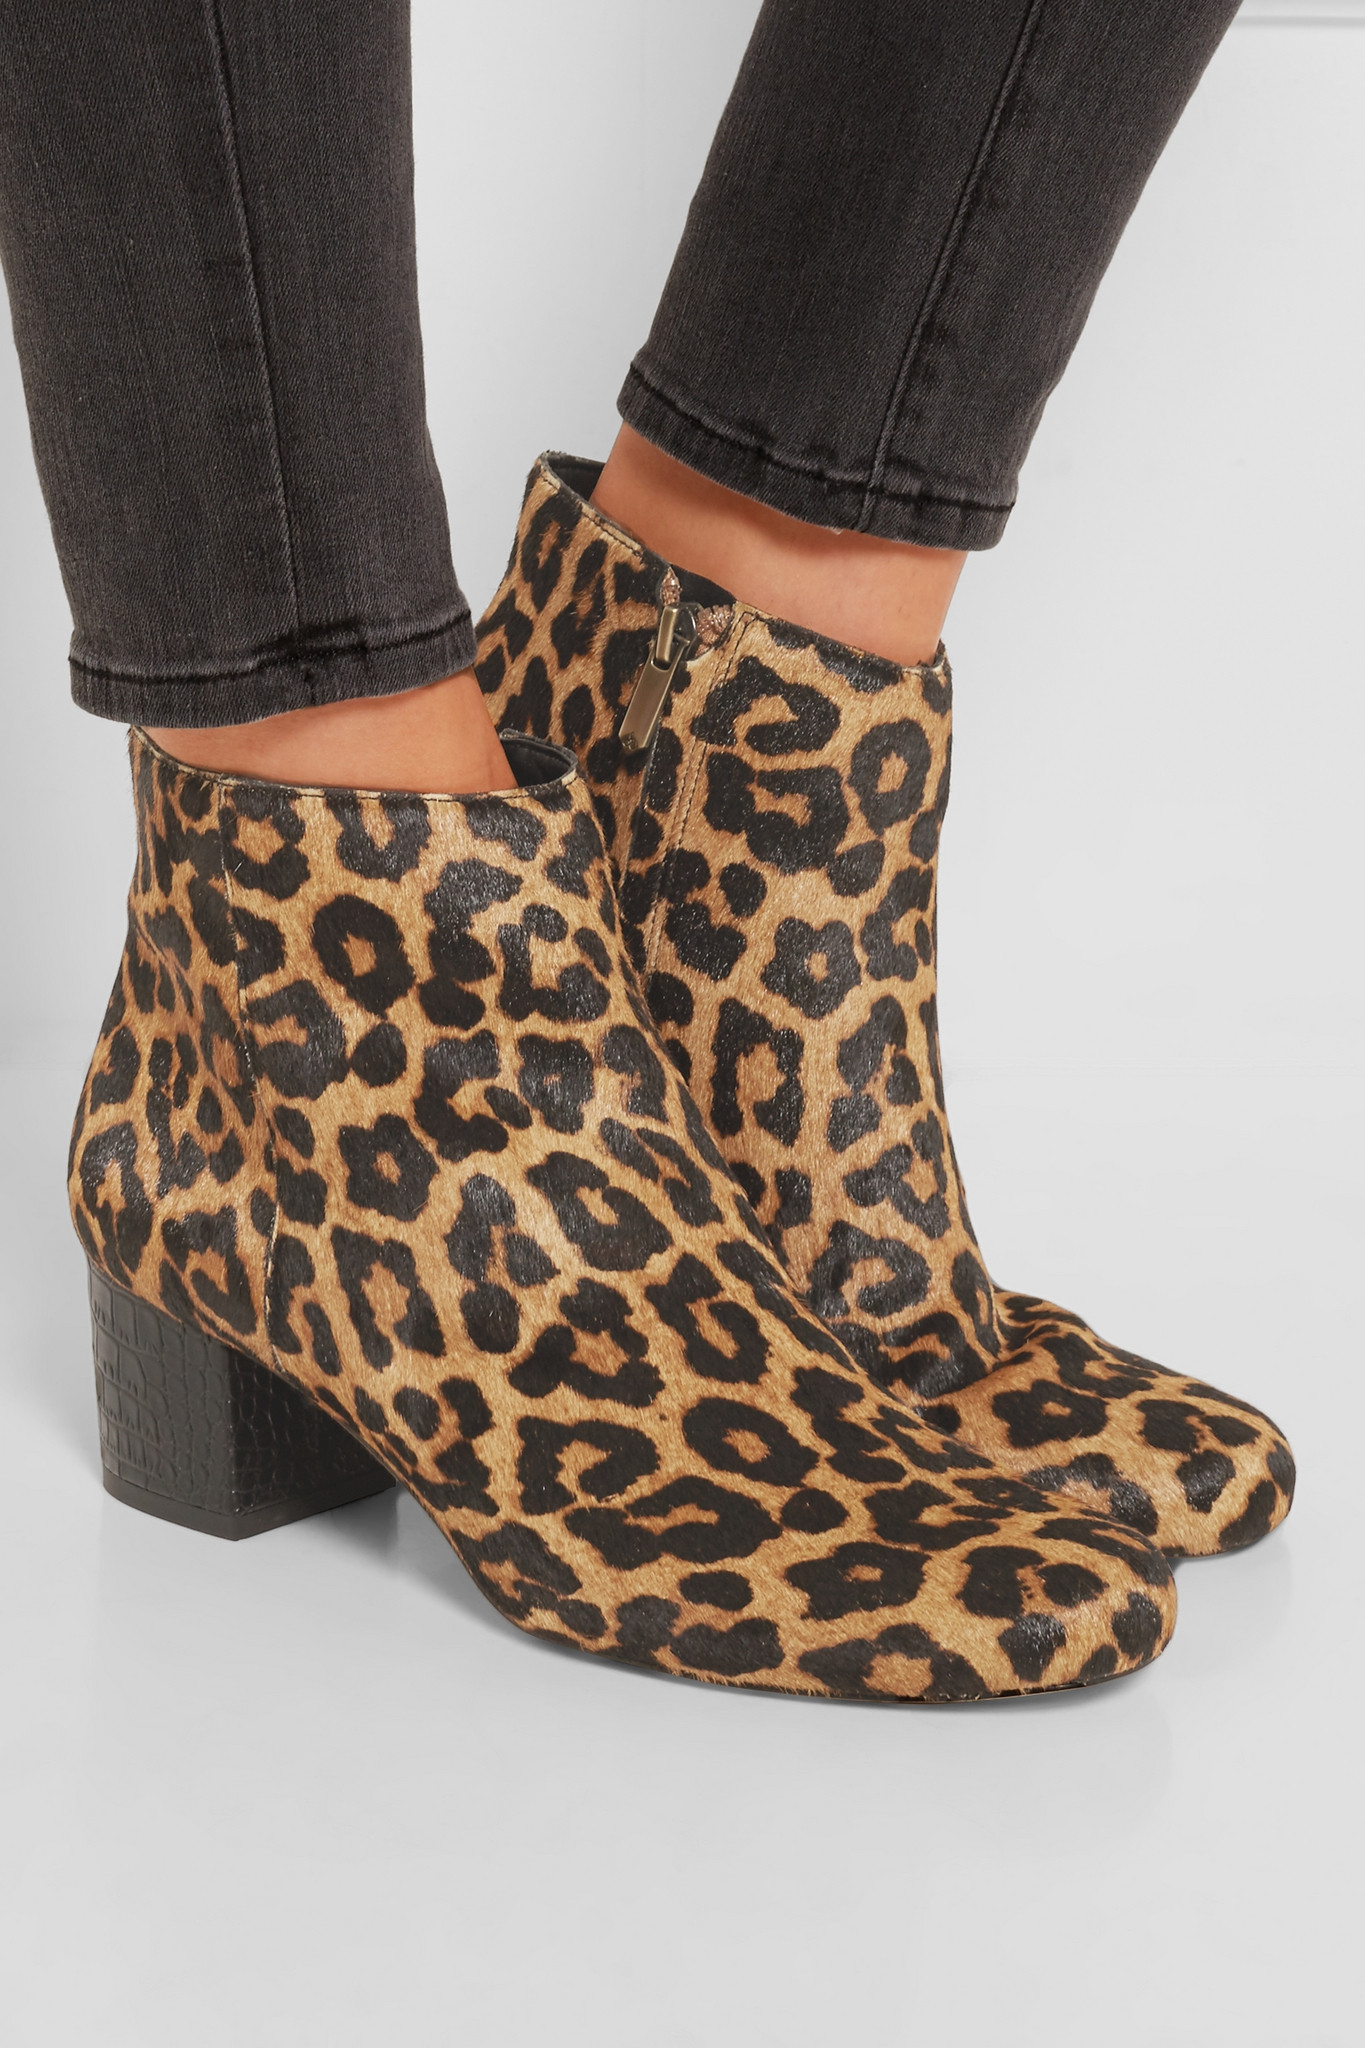 44331a49b4d9 Lyst - Sam Edelman Edith Leopard-print Calf Hair Ankle Boots in Brown